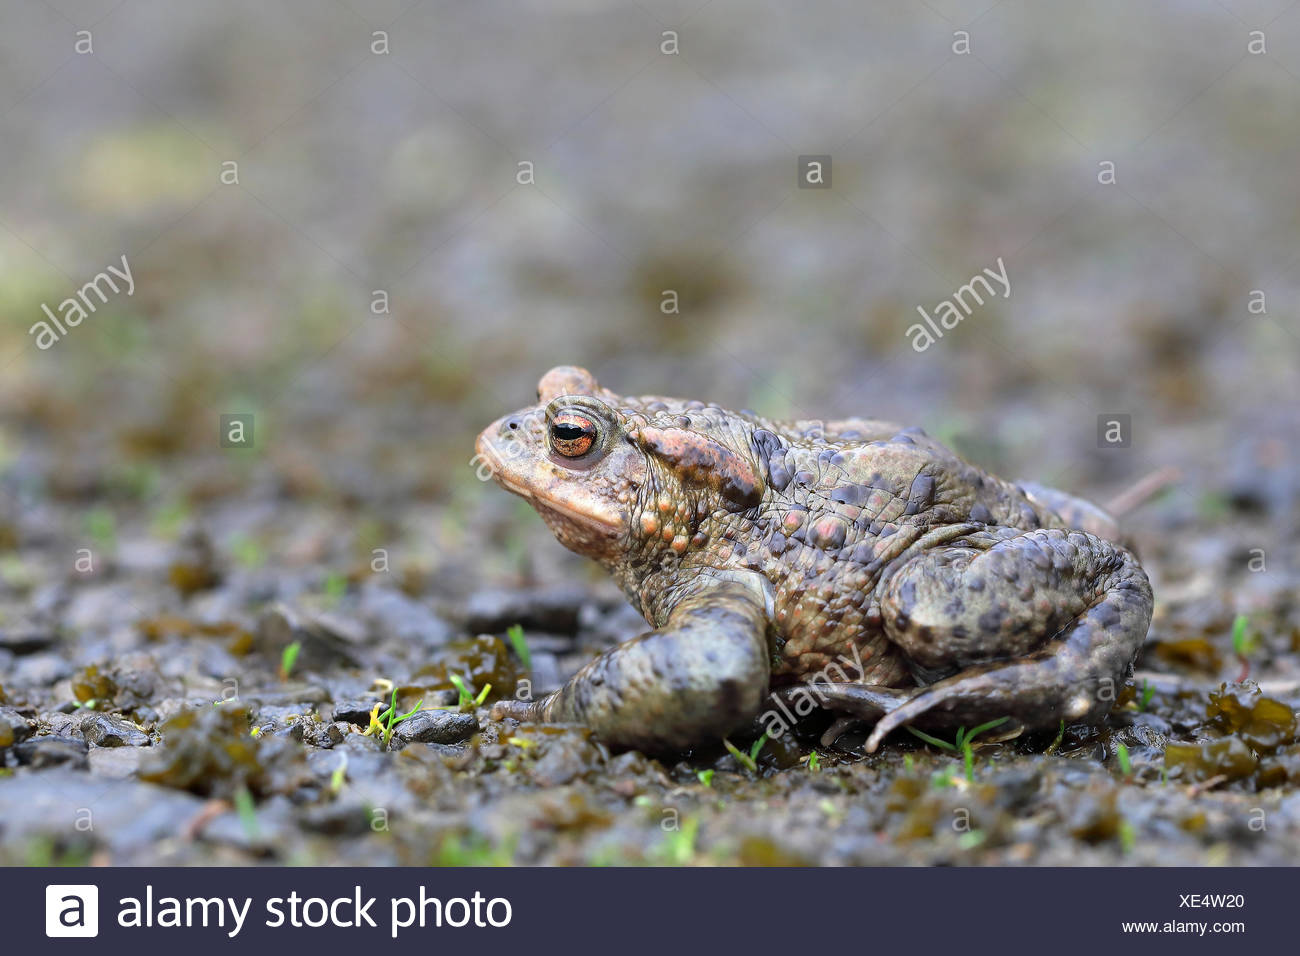 Common toad (Bufo bufo) sitting on damp ground, Malscheid Nature Reserve, Siegerland, North Rhine-Westphalia, Germany Stock Photo